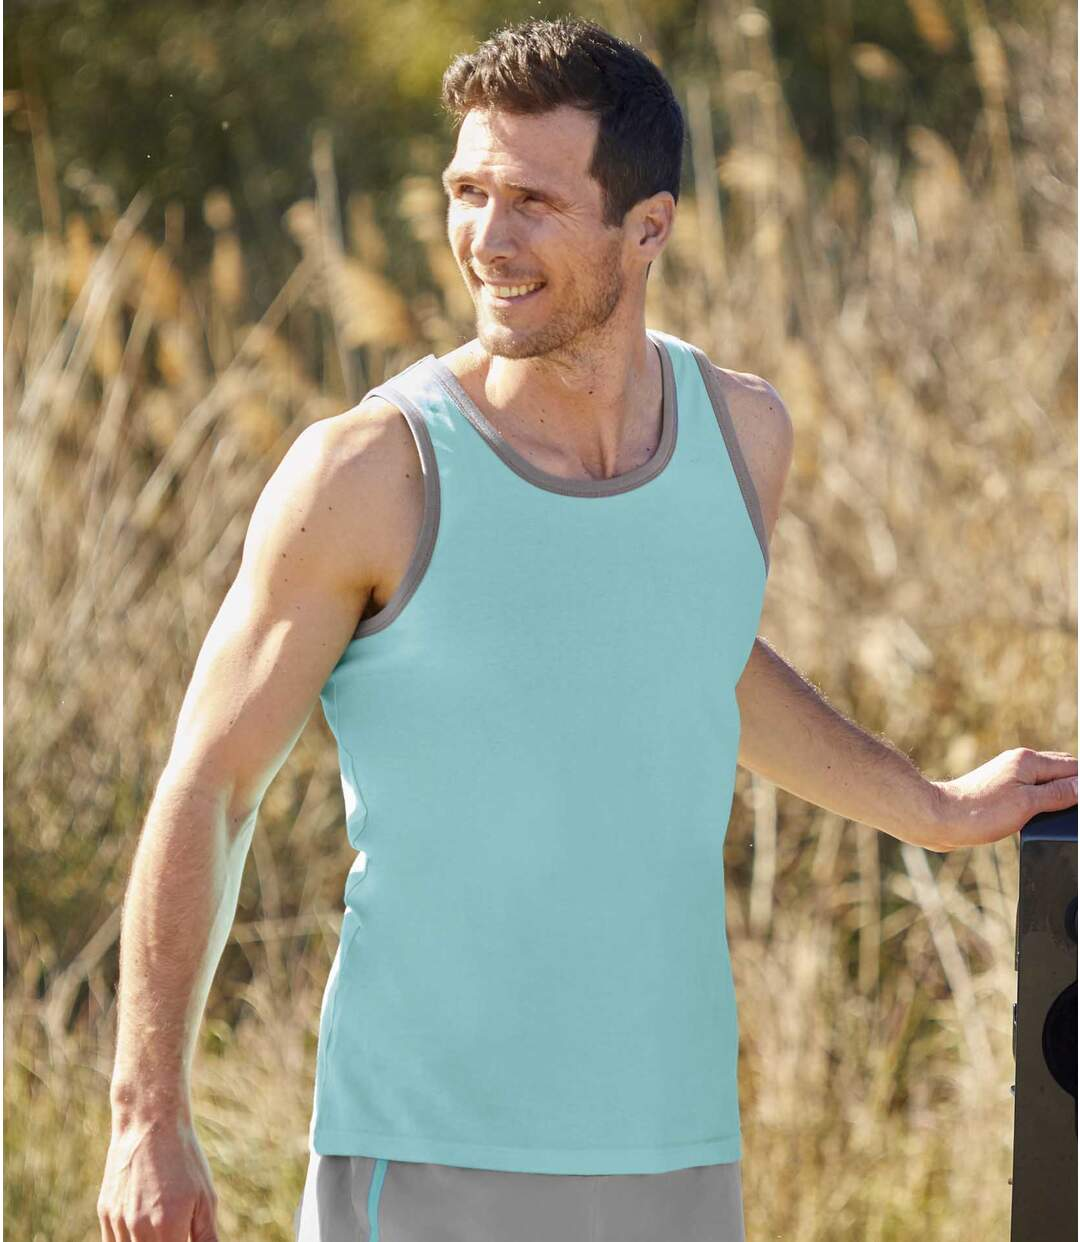 Pack of 3 Men's Summer Vests - White Grey Turquoise